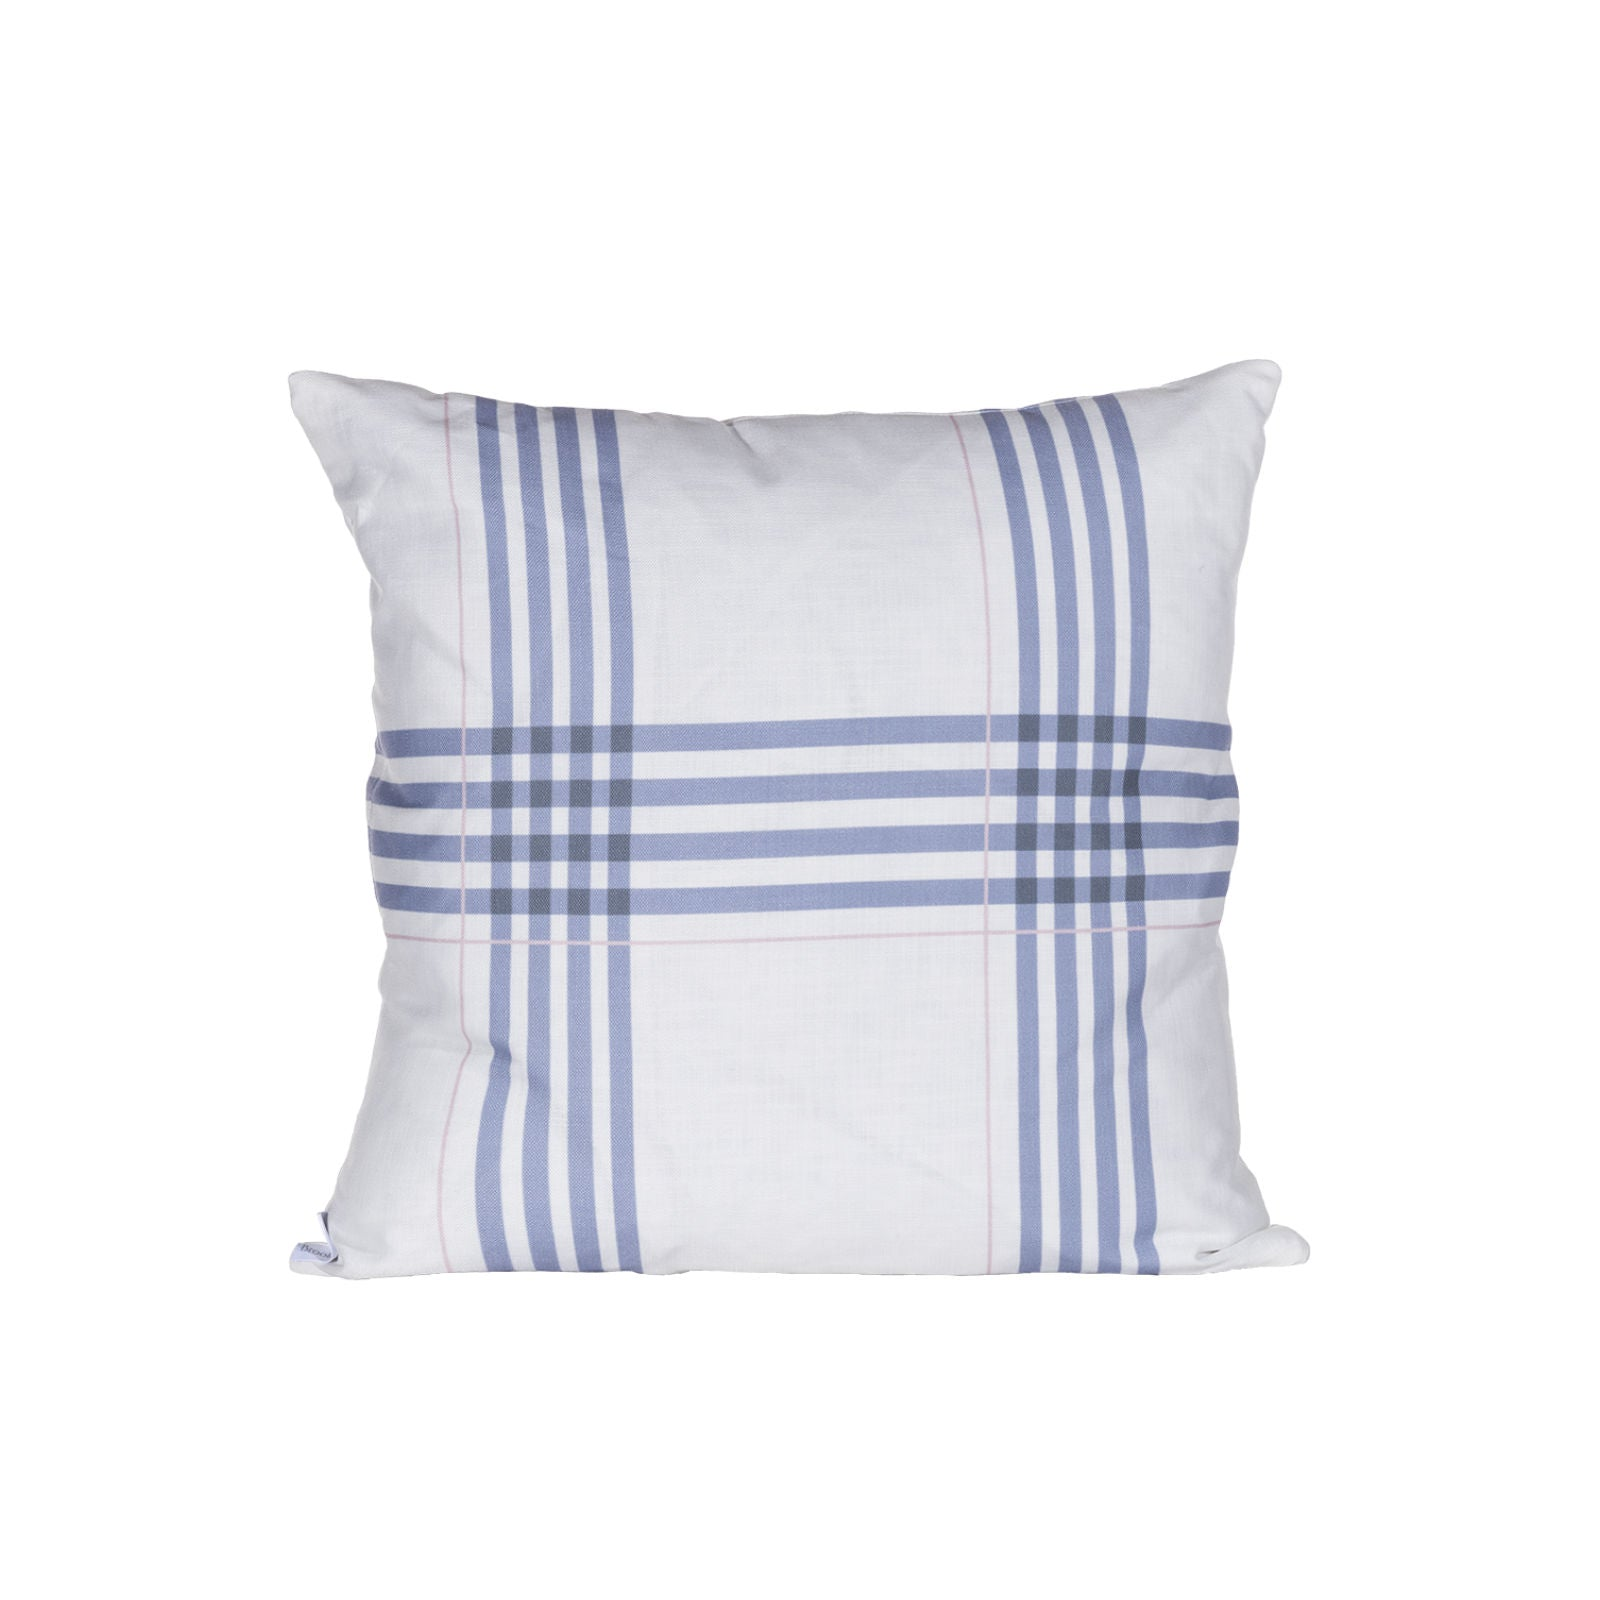 Johnnie Pillow in Periwinkle no. 1